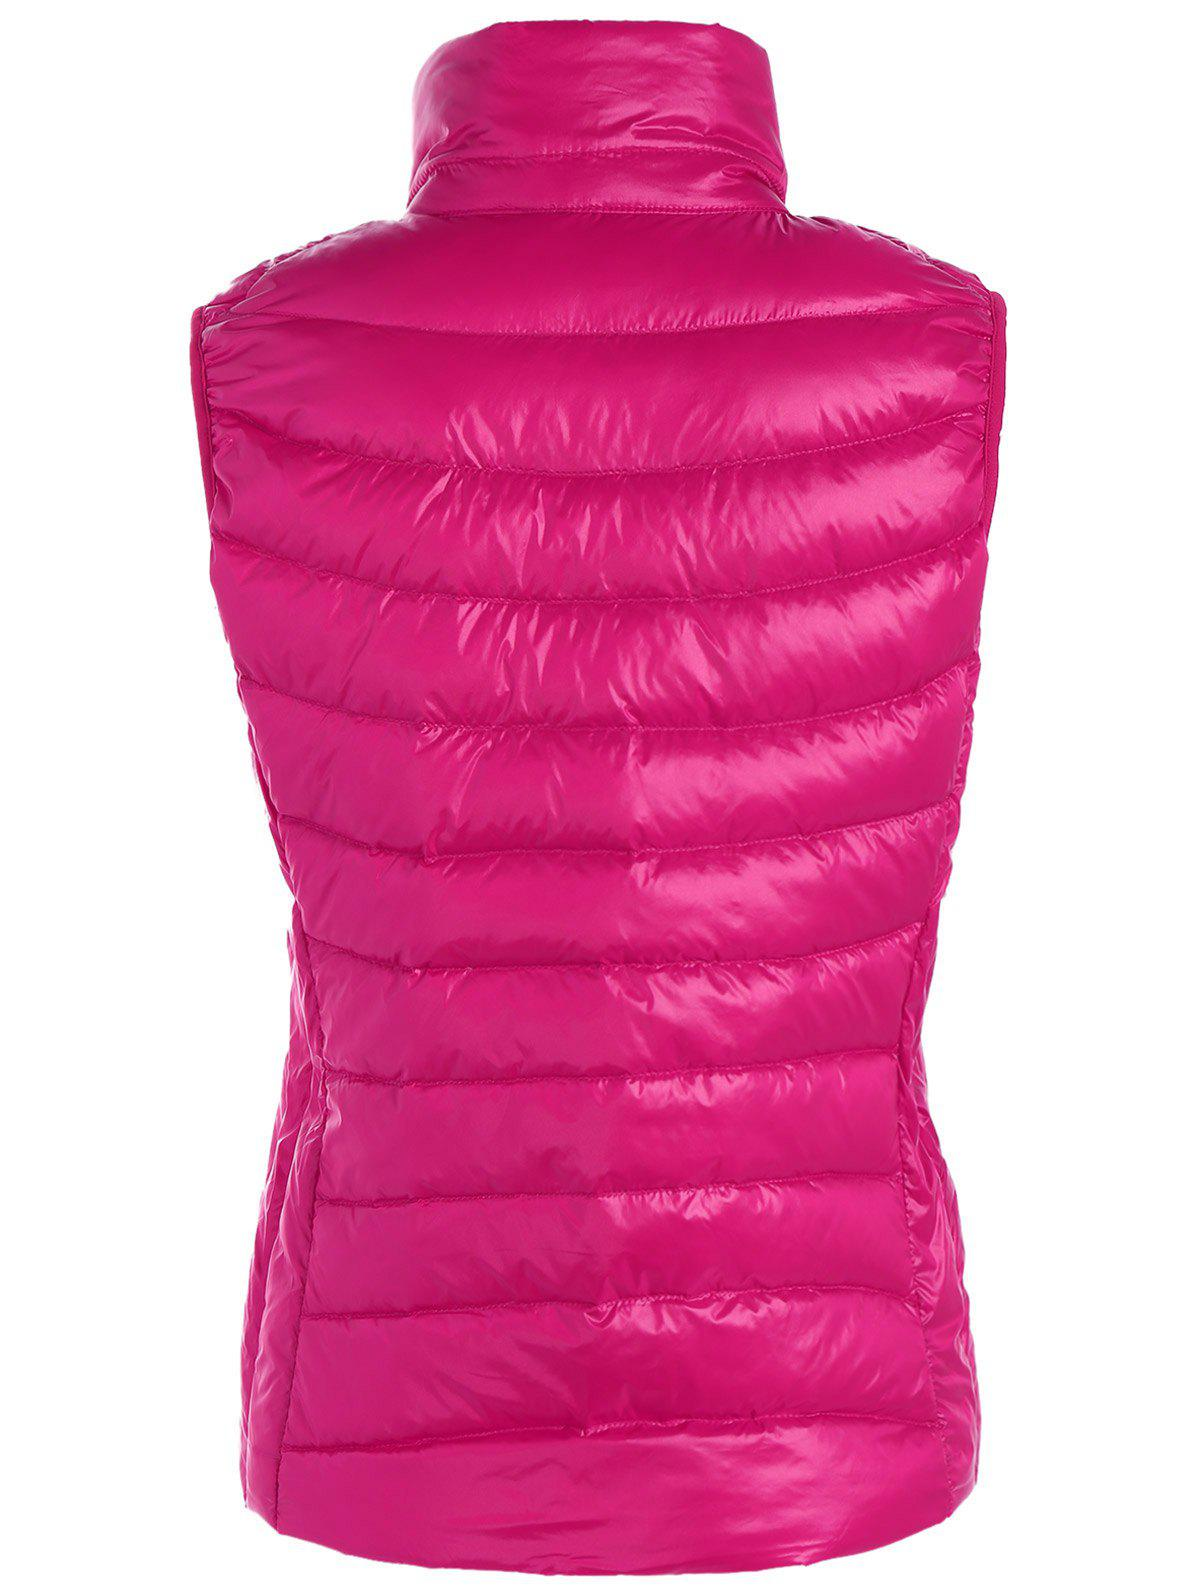 Padded Zip Up Vest with Stand Collar - ROSE RED M